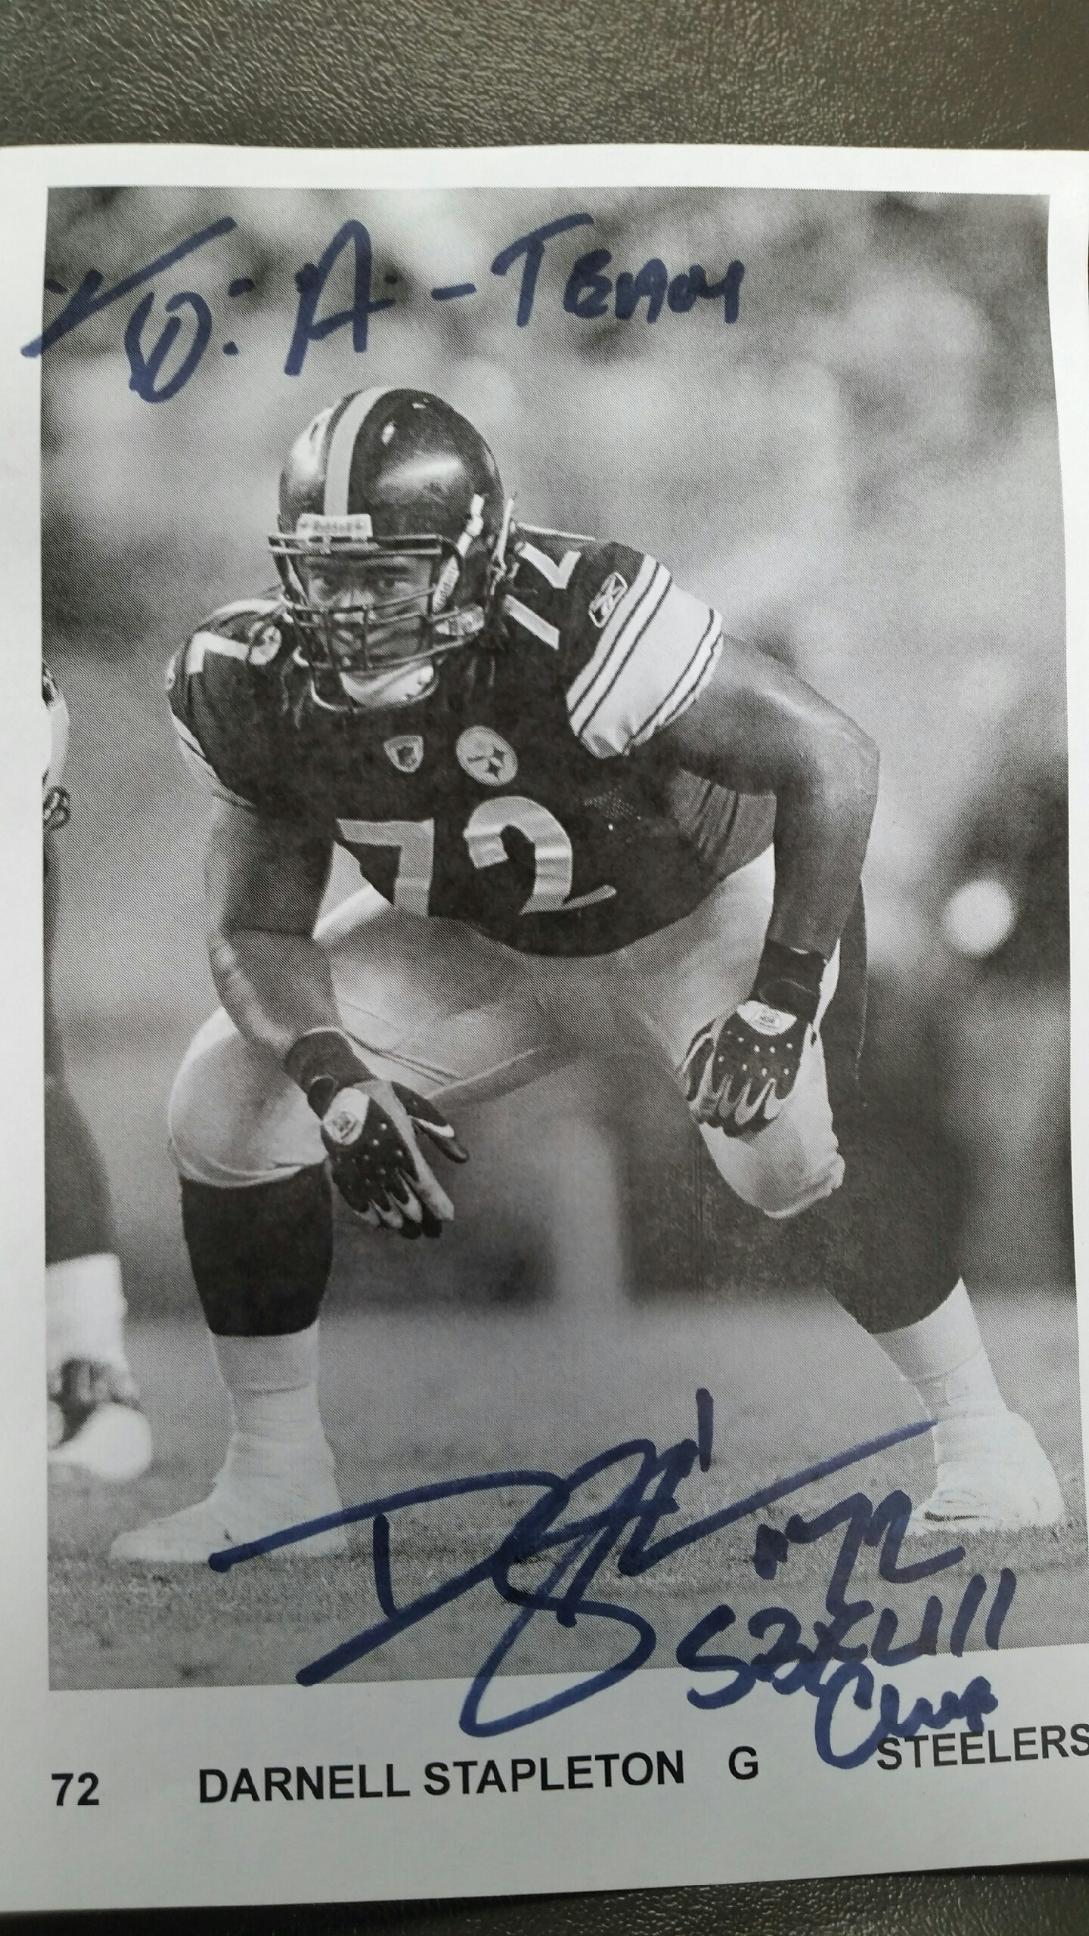 Autograph- From: Darnell To: Willaim